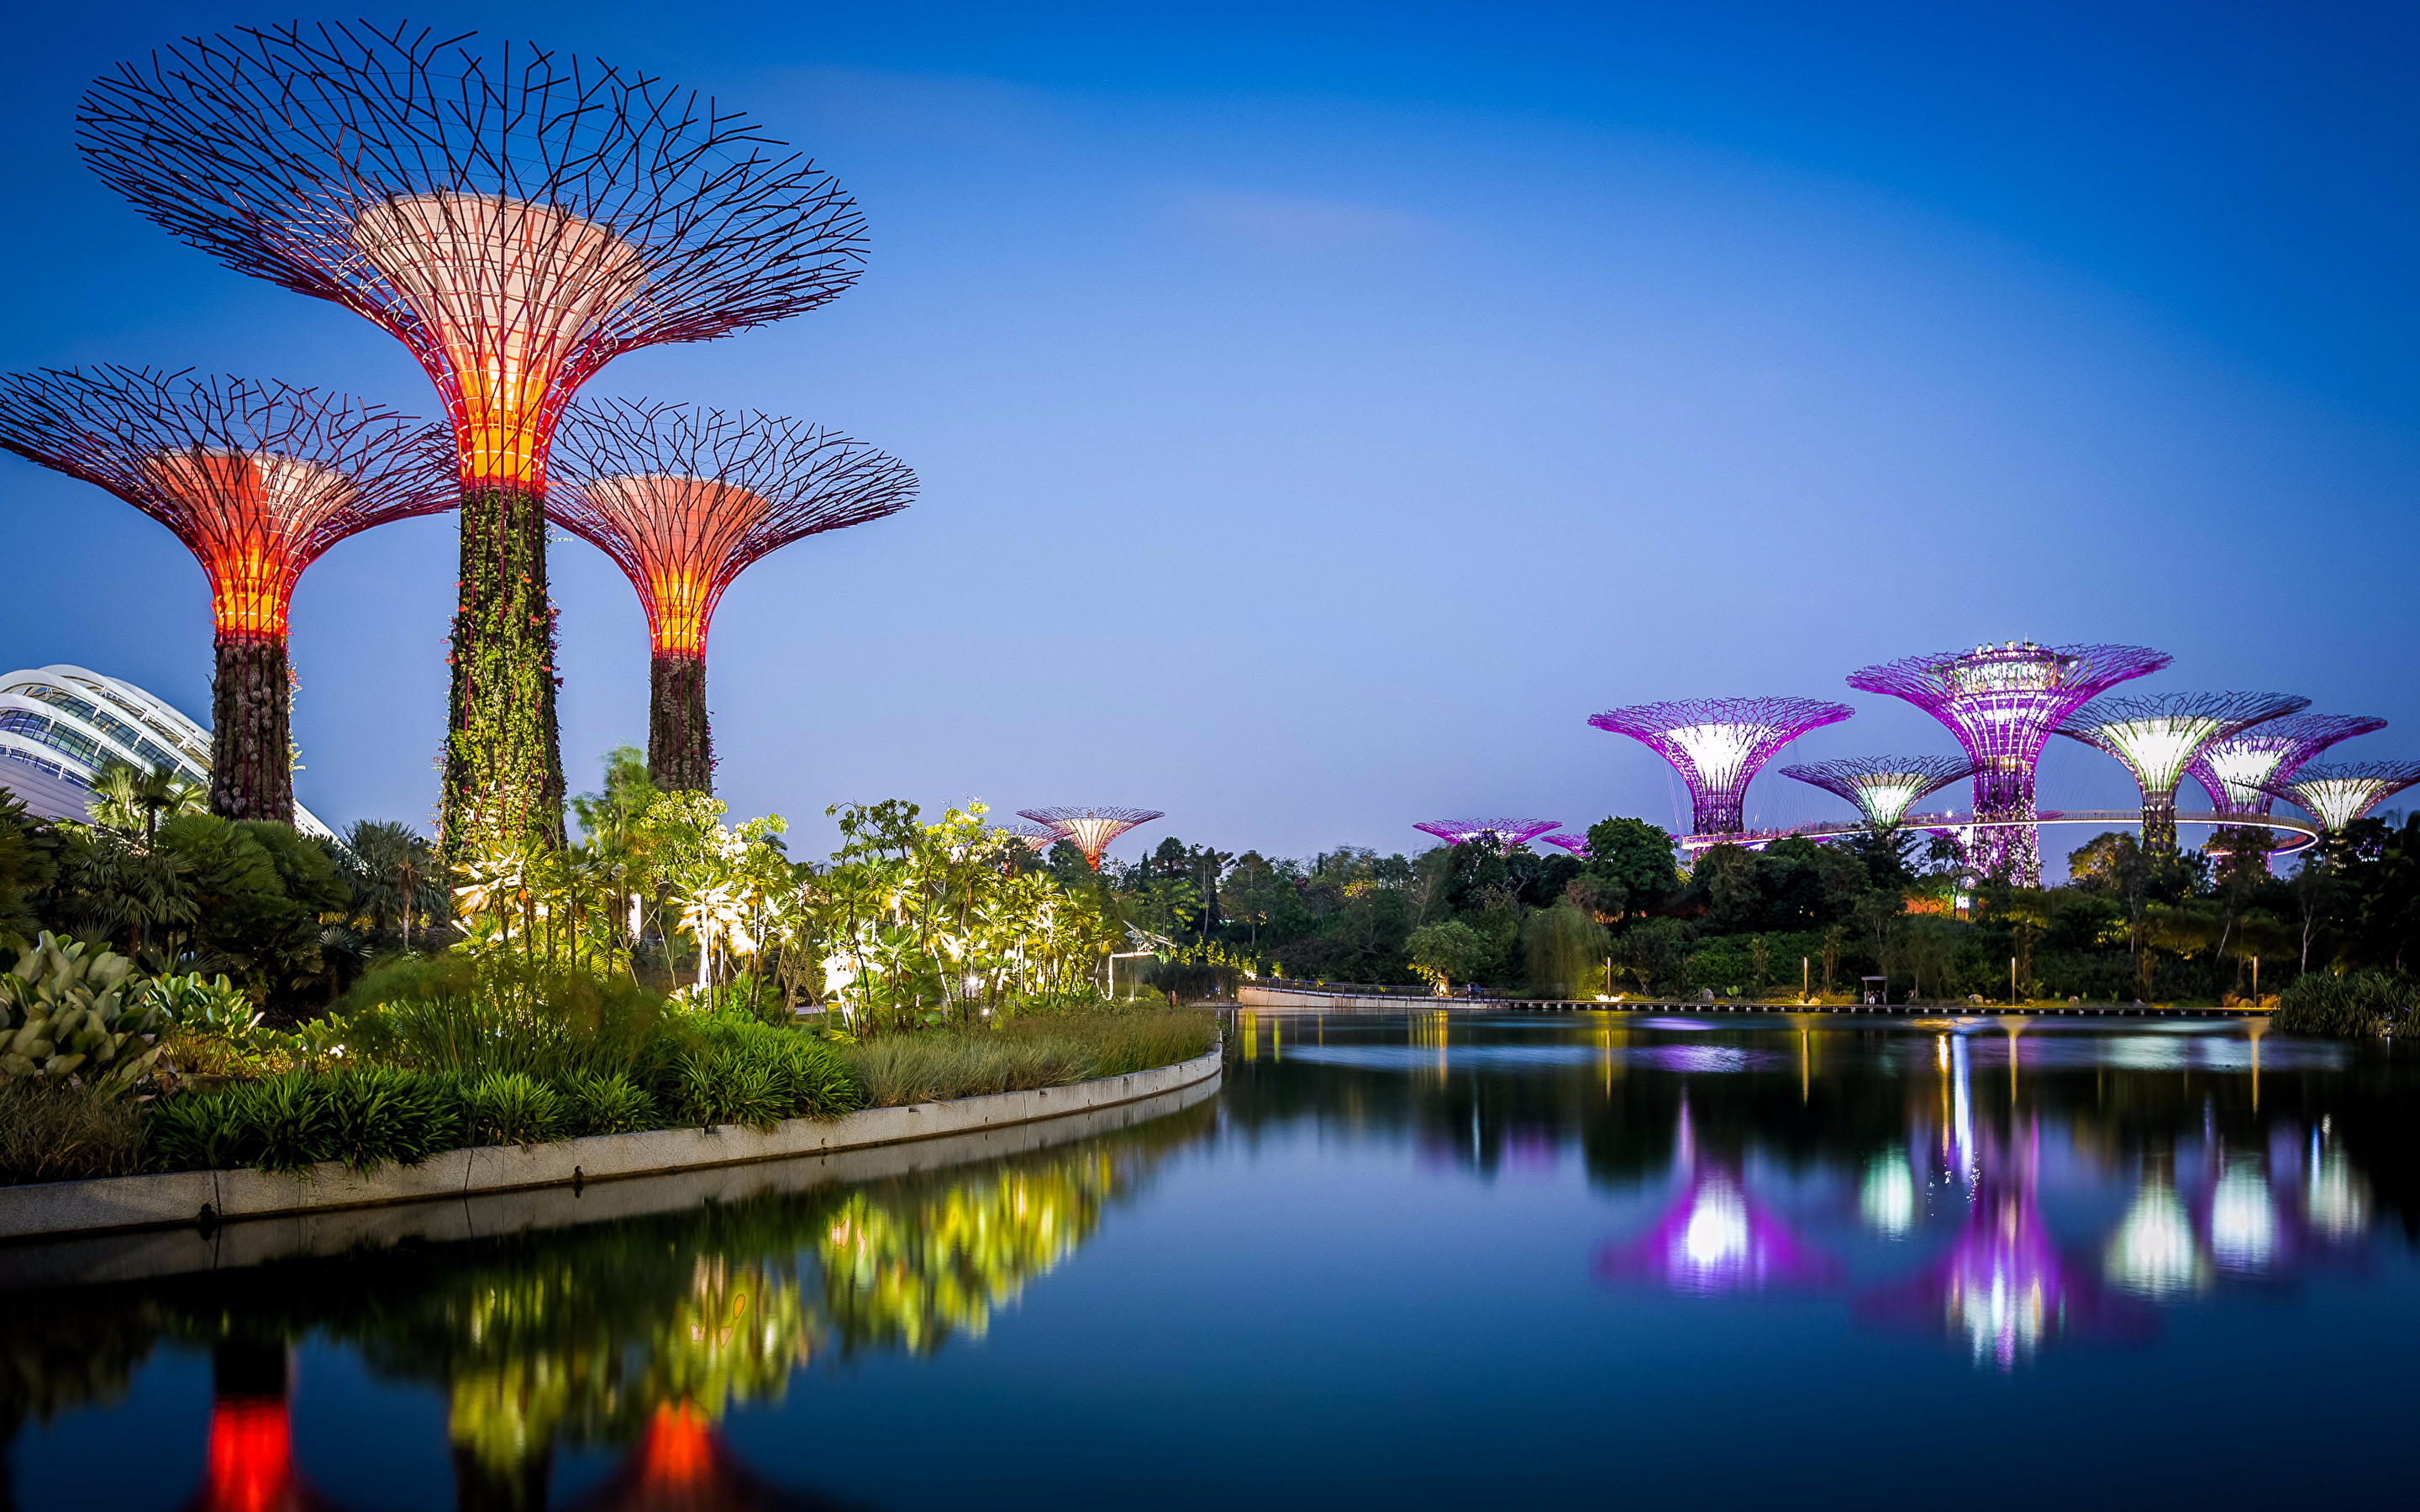 9a148c2f 0c77 4bec 8505 64b9bf11001b 7358 singapore gardens by the bay 02